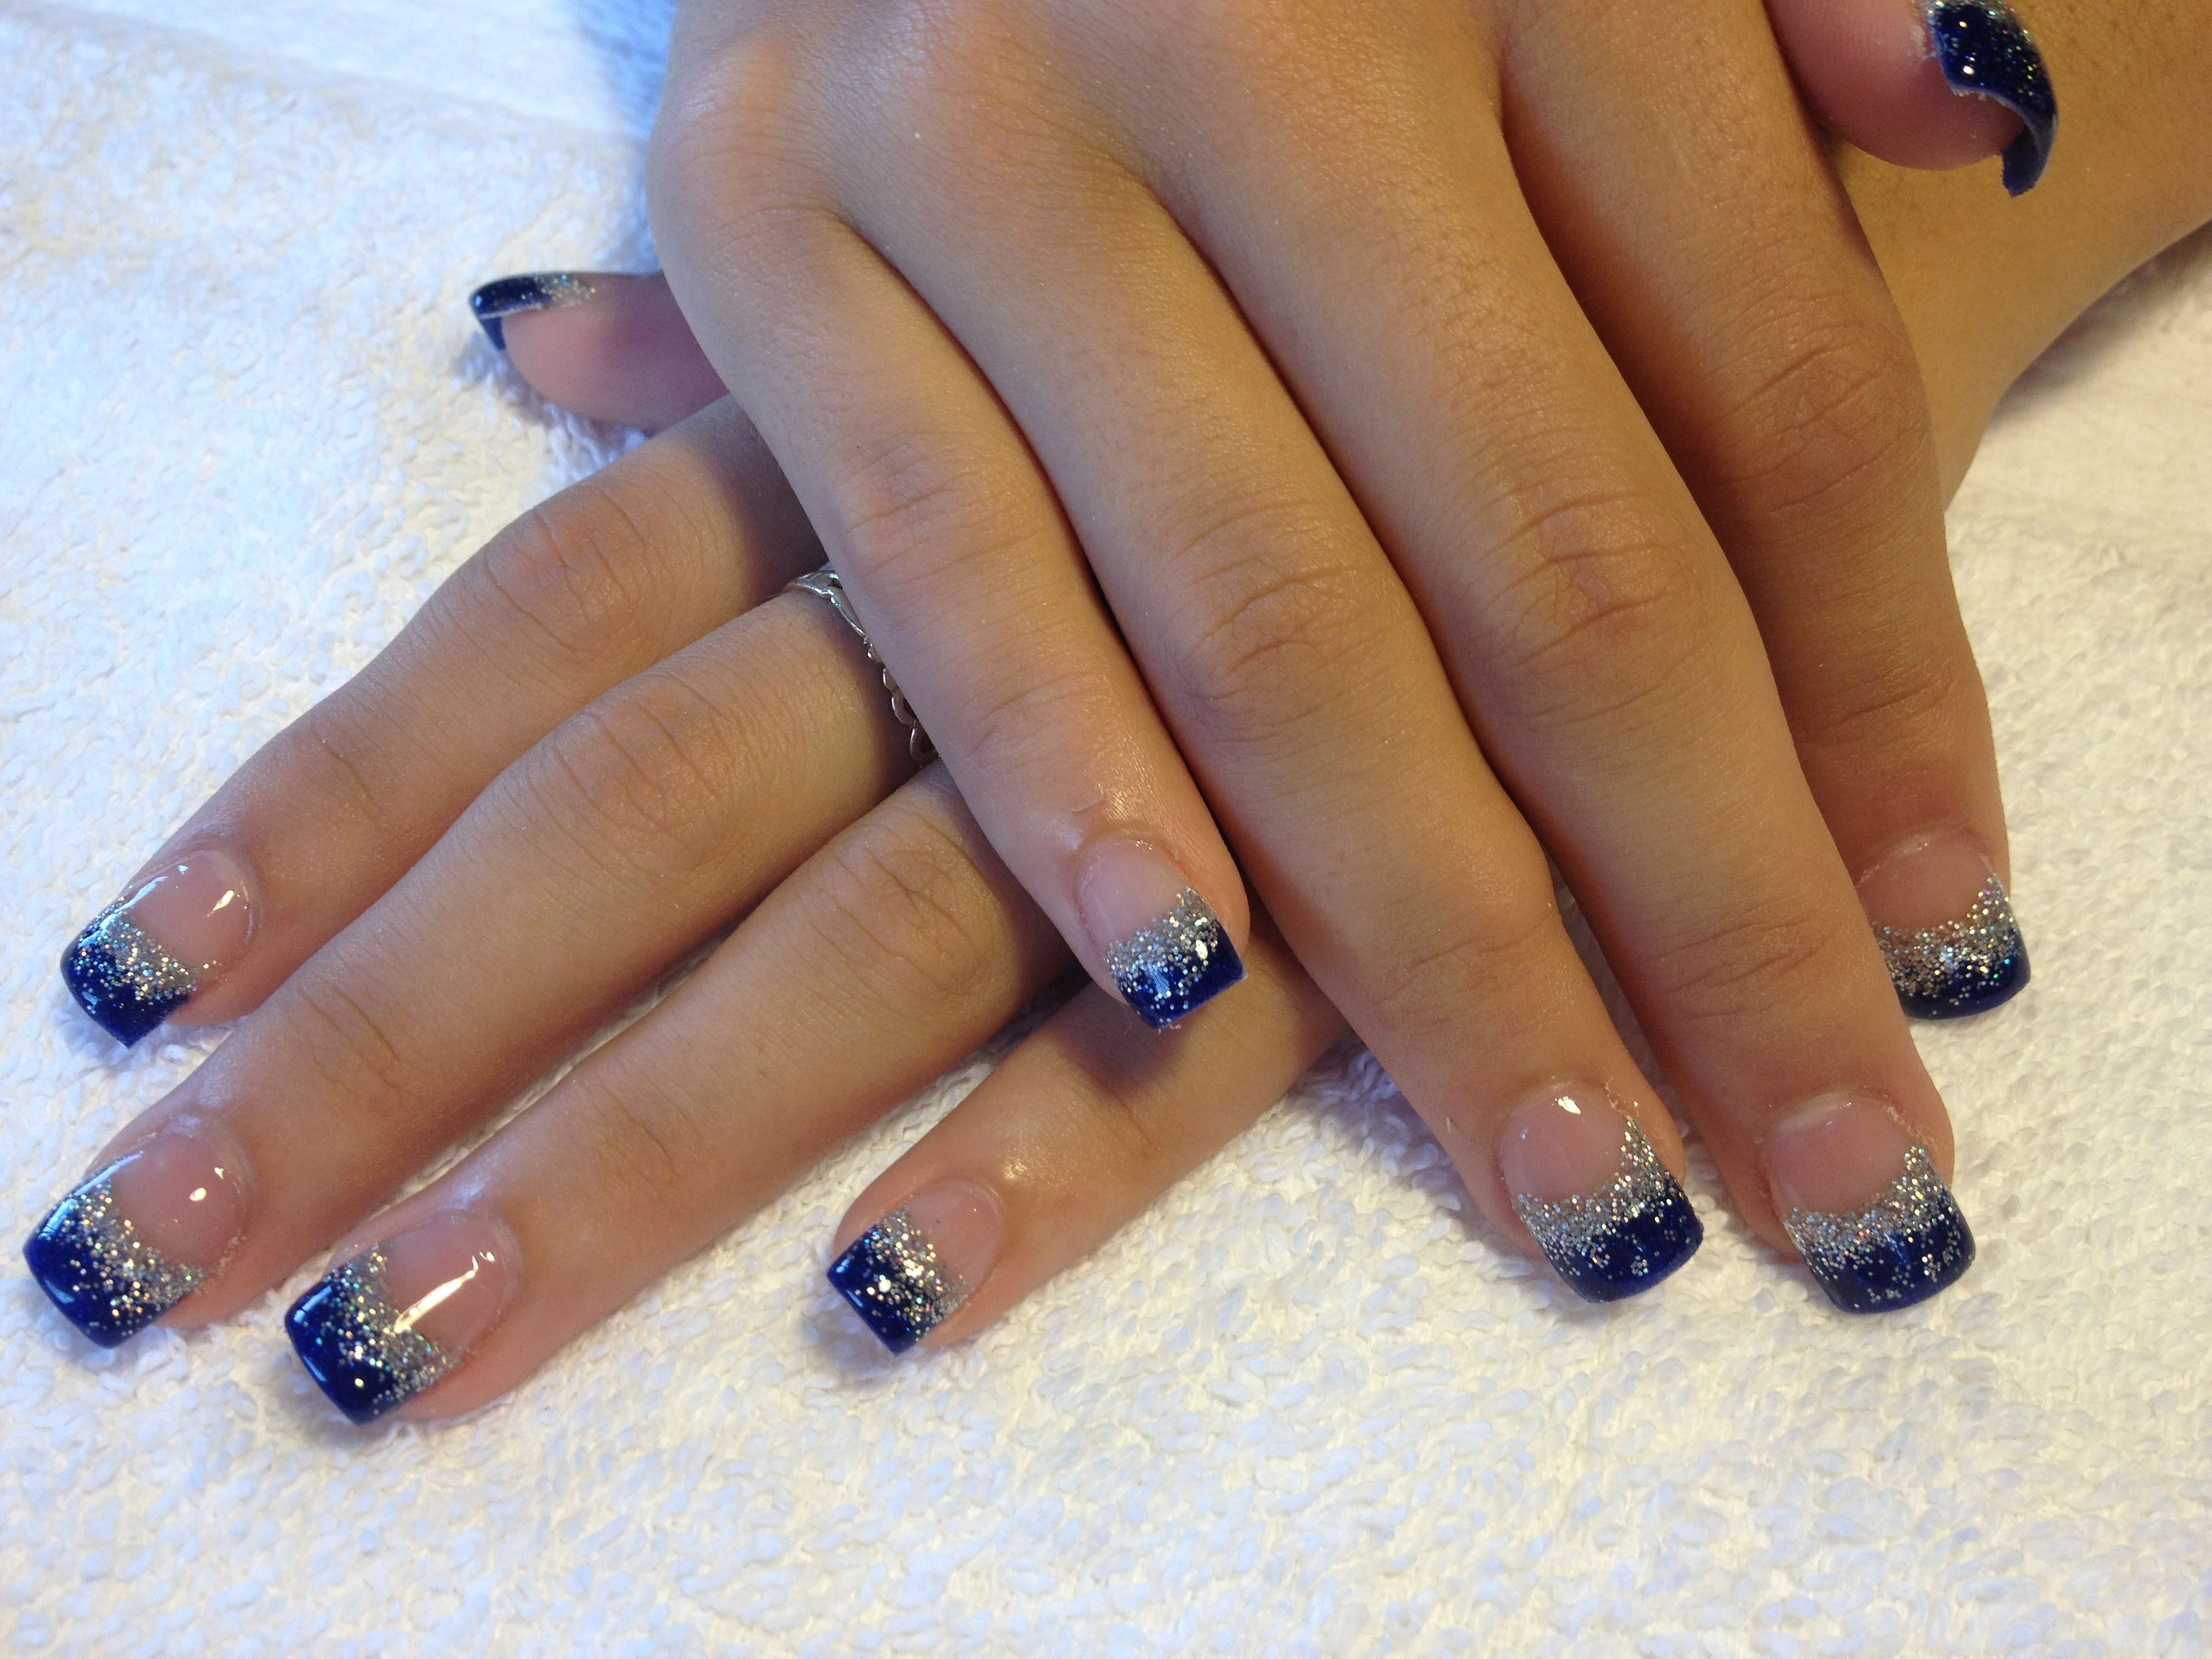 Acrylic Nails Rotal Blue Amp Sliver Glitter Tips Nails Blue Silver Nails Royal Blue Nails